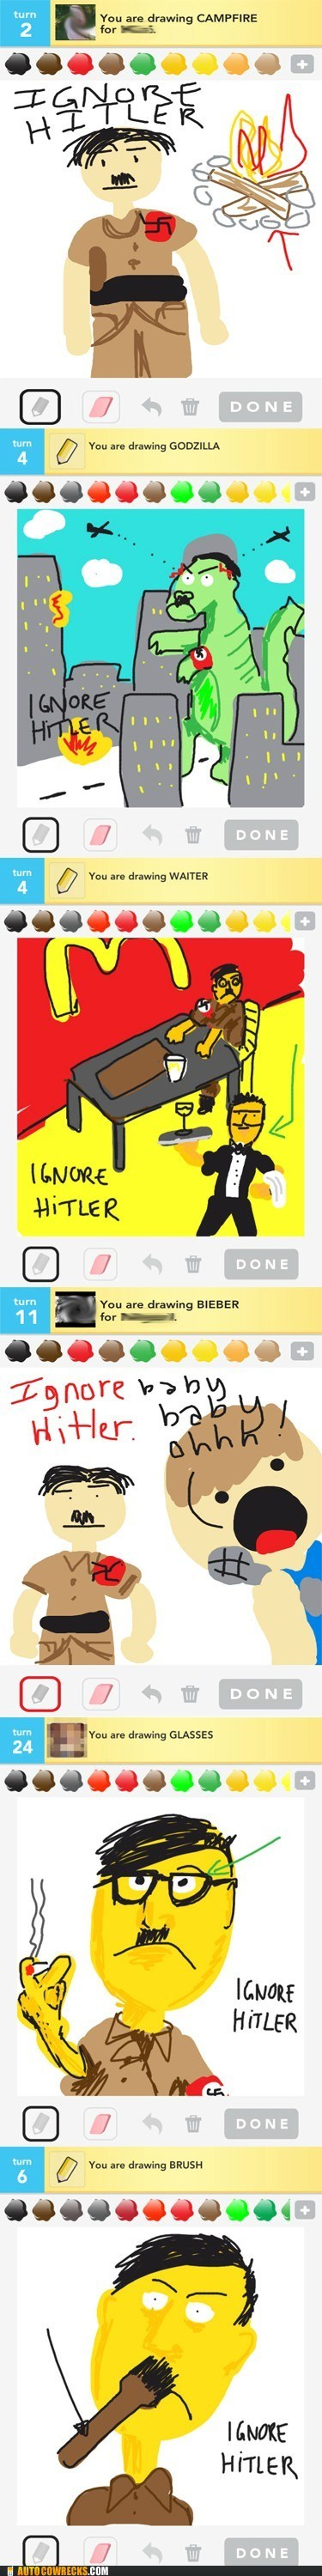 AutocoWrecks draw something german fascist dictators ignore hitler - 6213488640